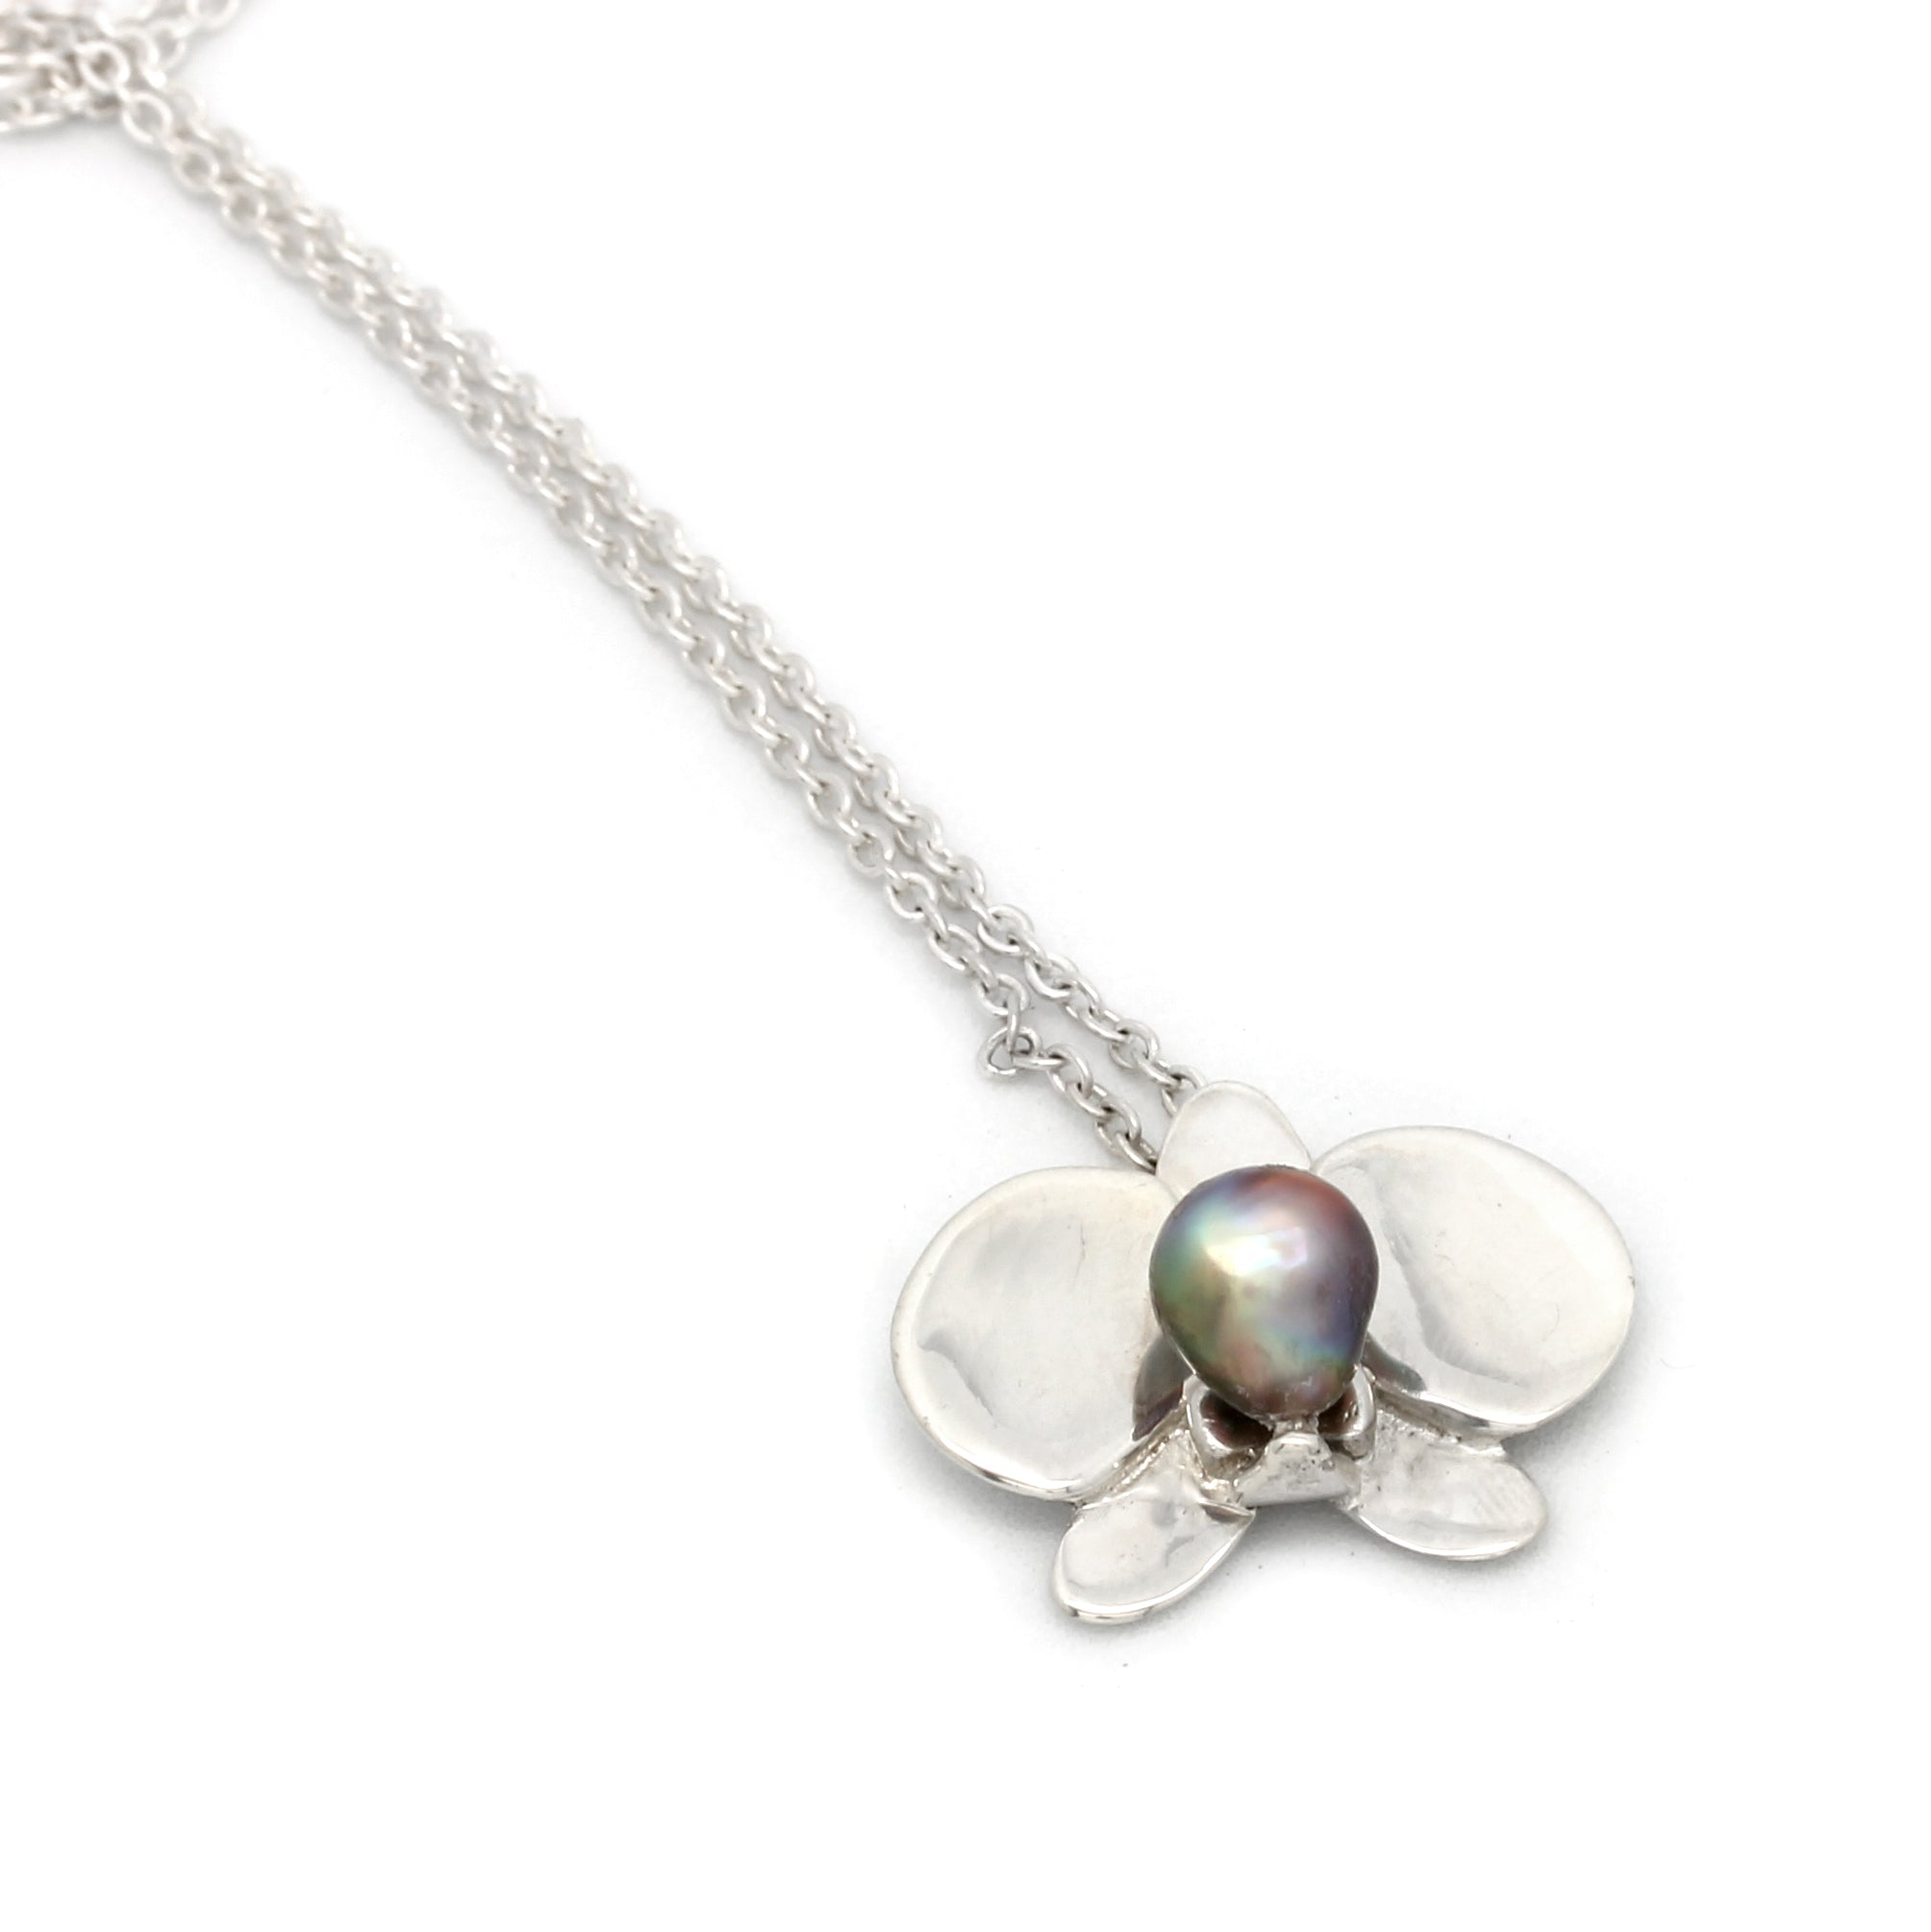 ORCHID: Silver Necklace with Keshi Cortez Pearls